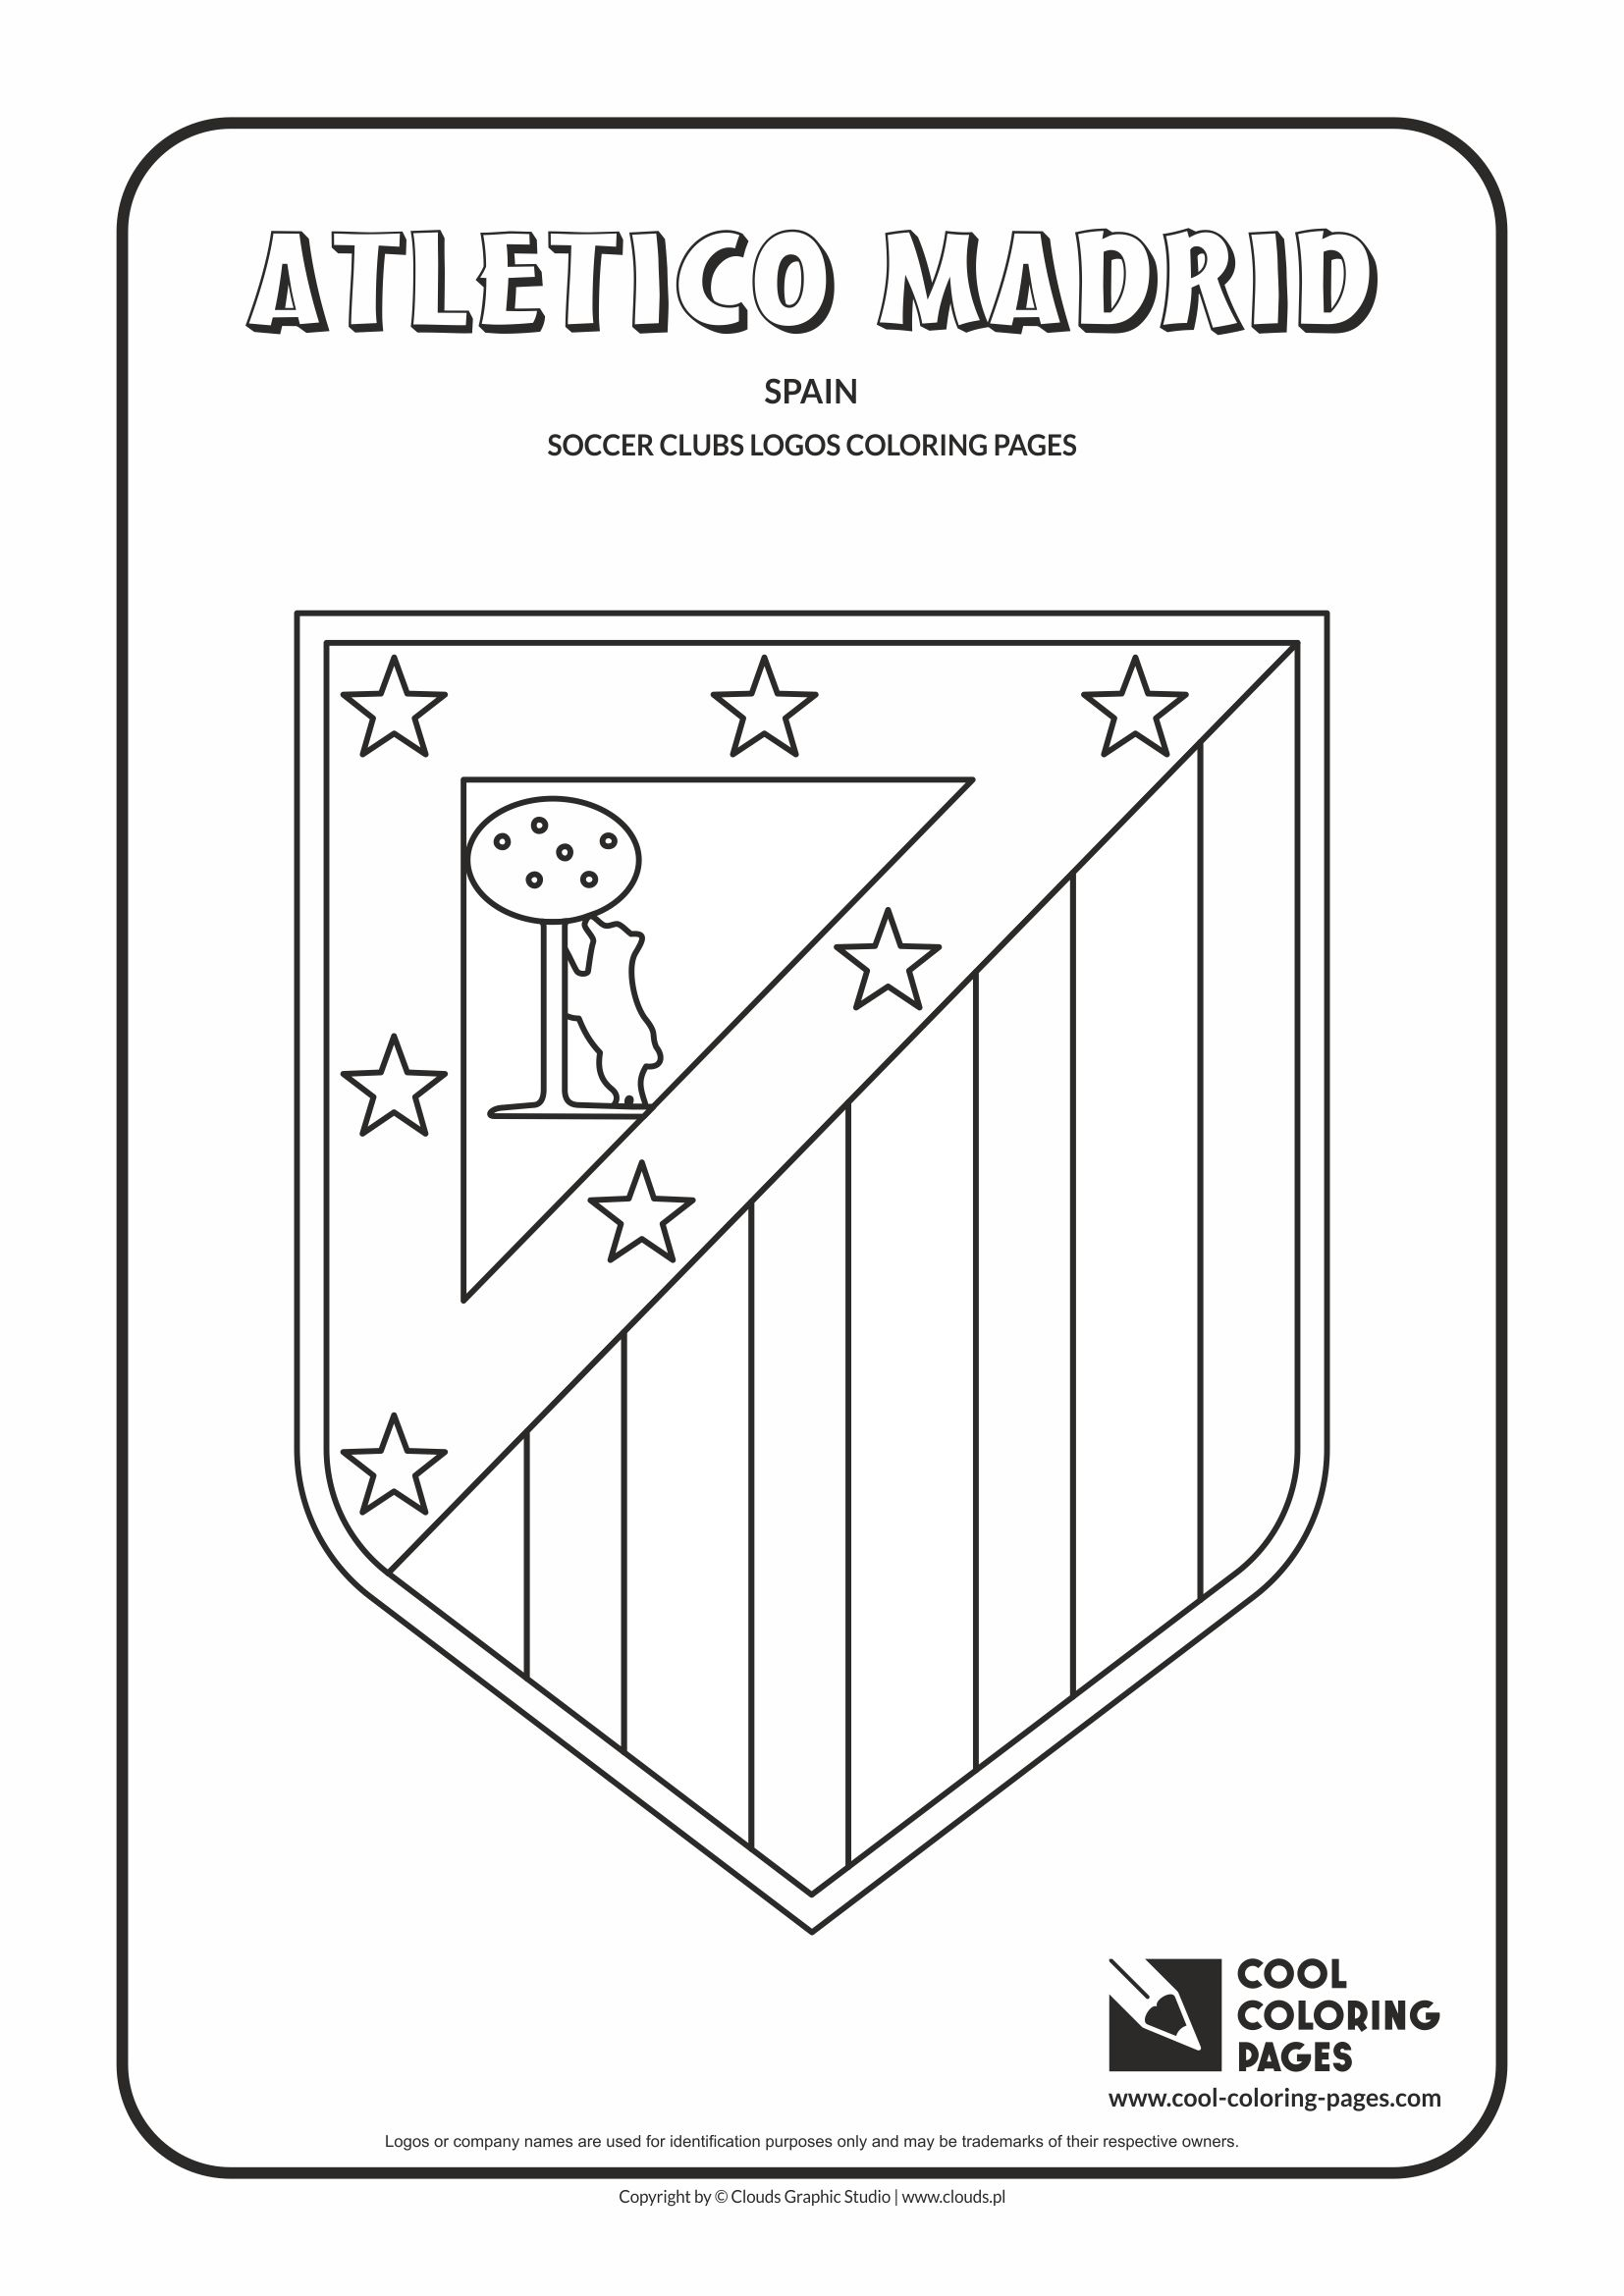 Atletico Madrid logo coloring / Coloring page with Atletico Madrid logo / Atletico Madrid logo colouring page.